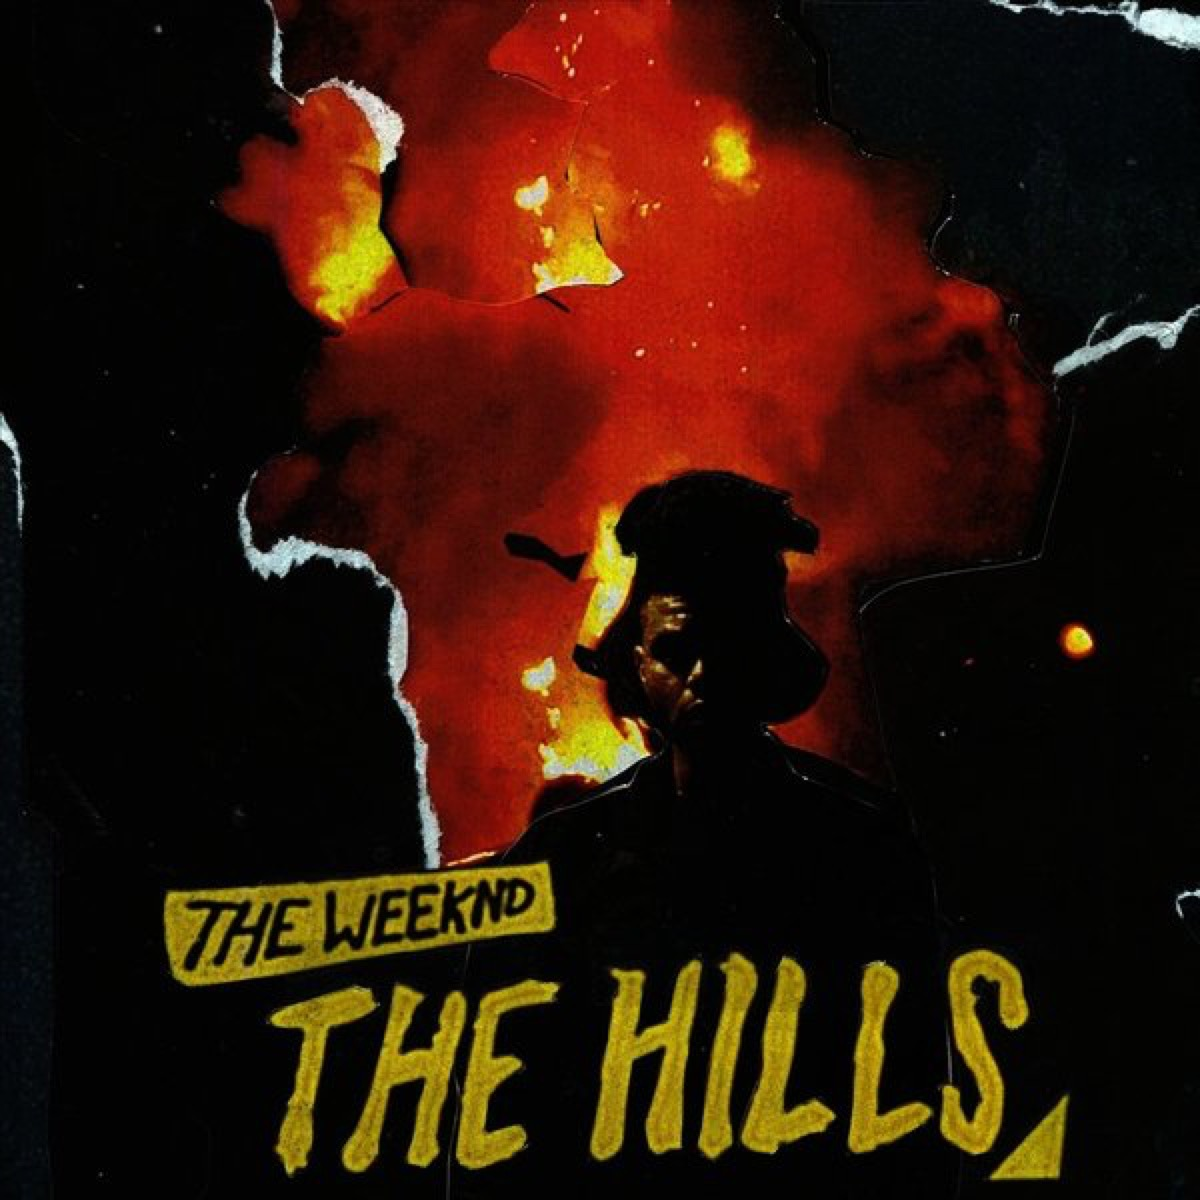 The Hills single by The Weeknd